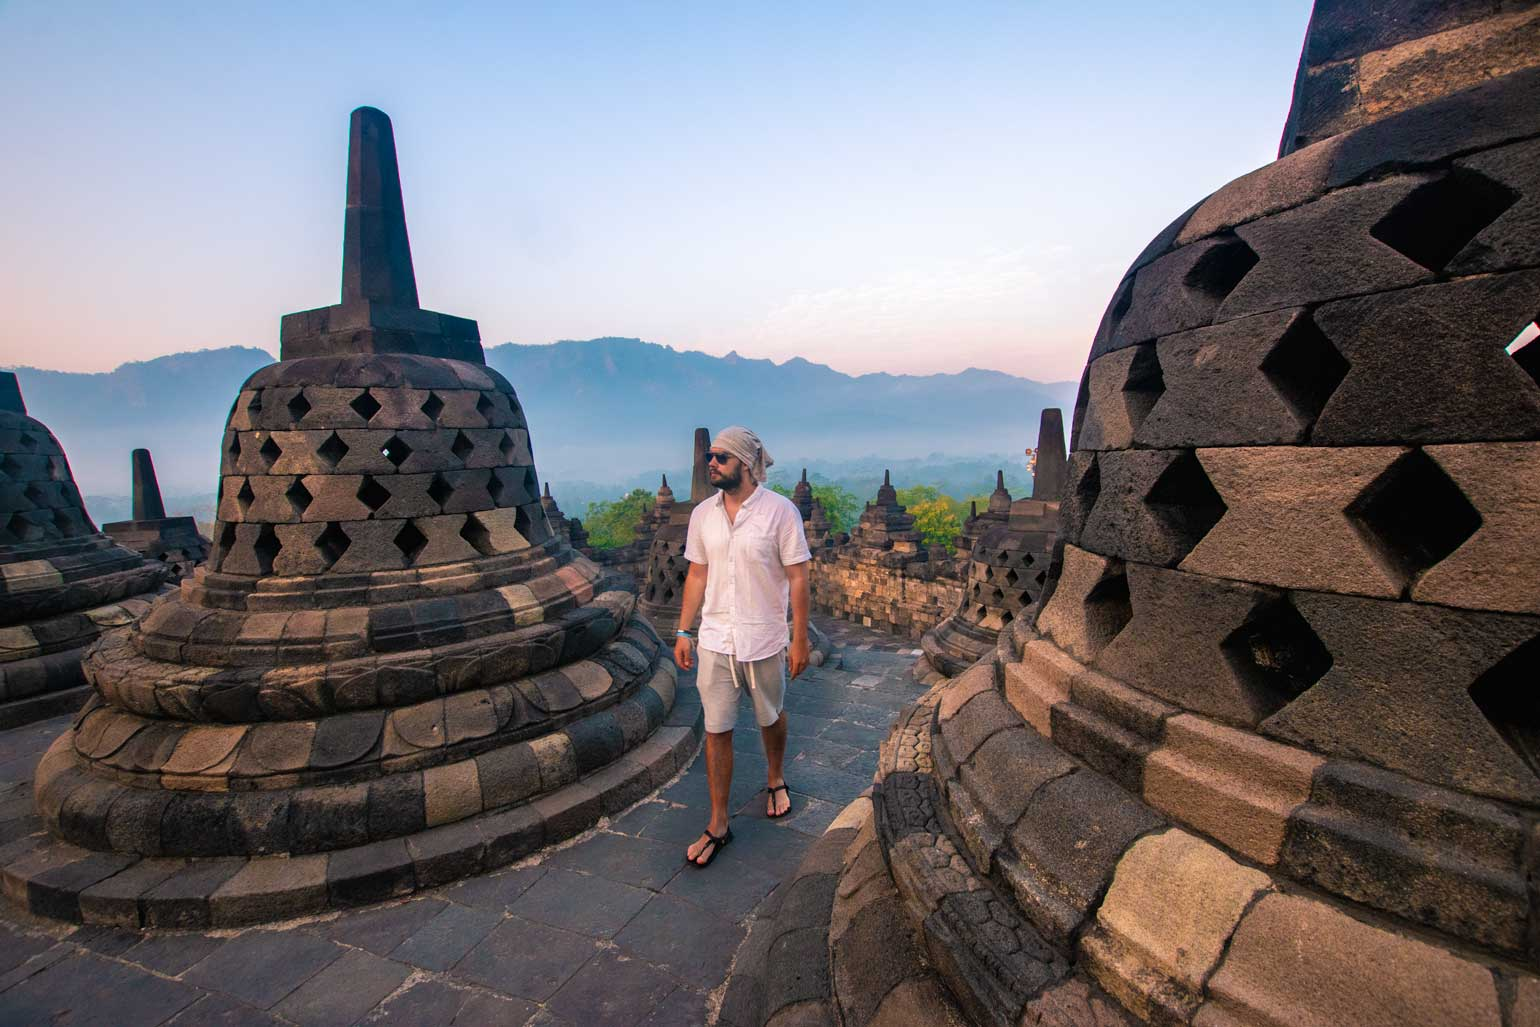 exploring the sunrise at Borobudur